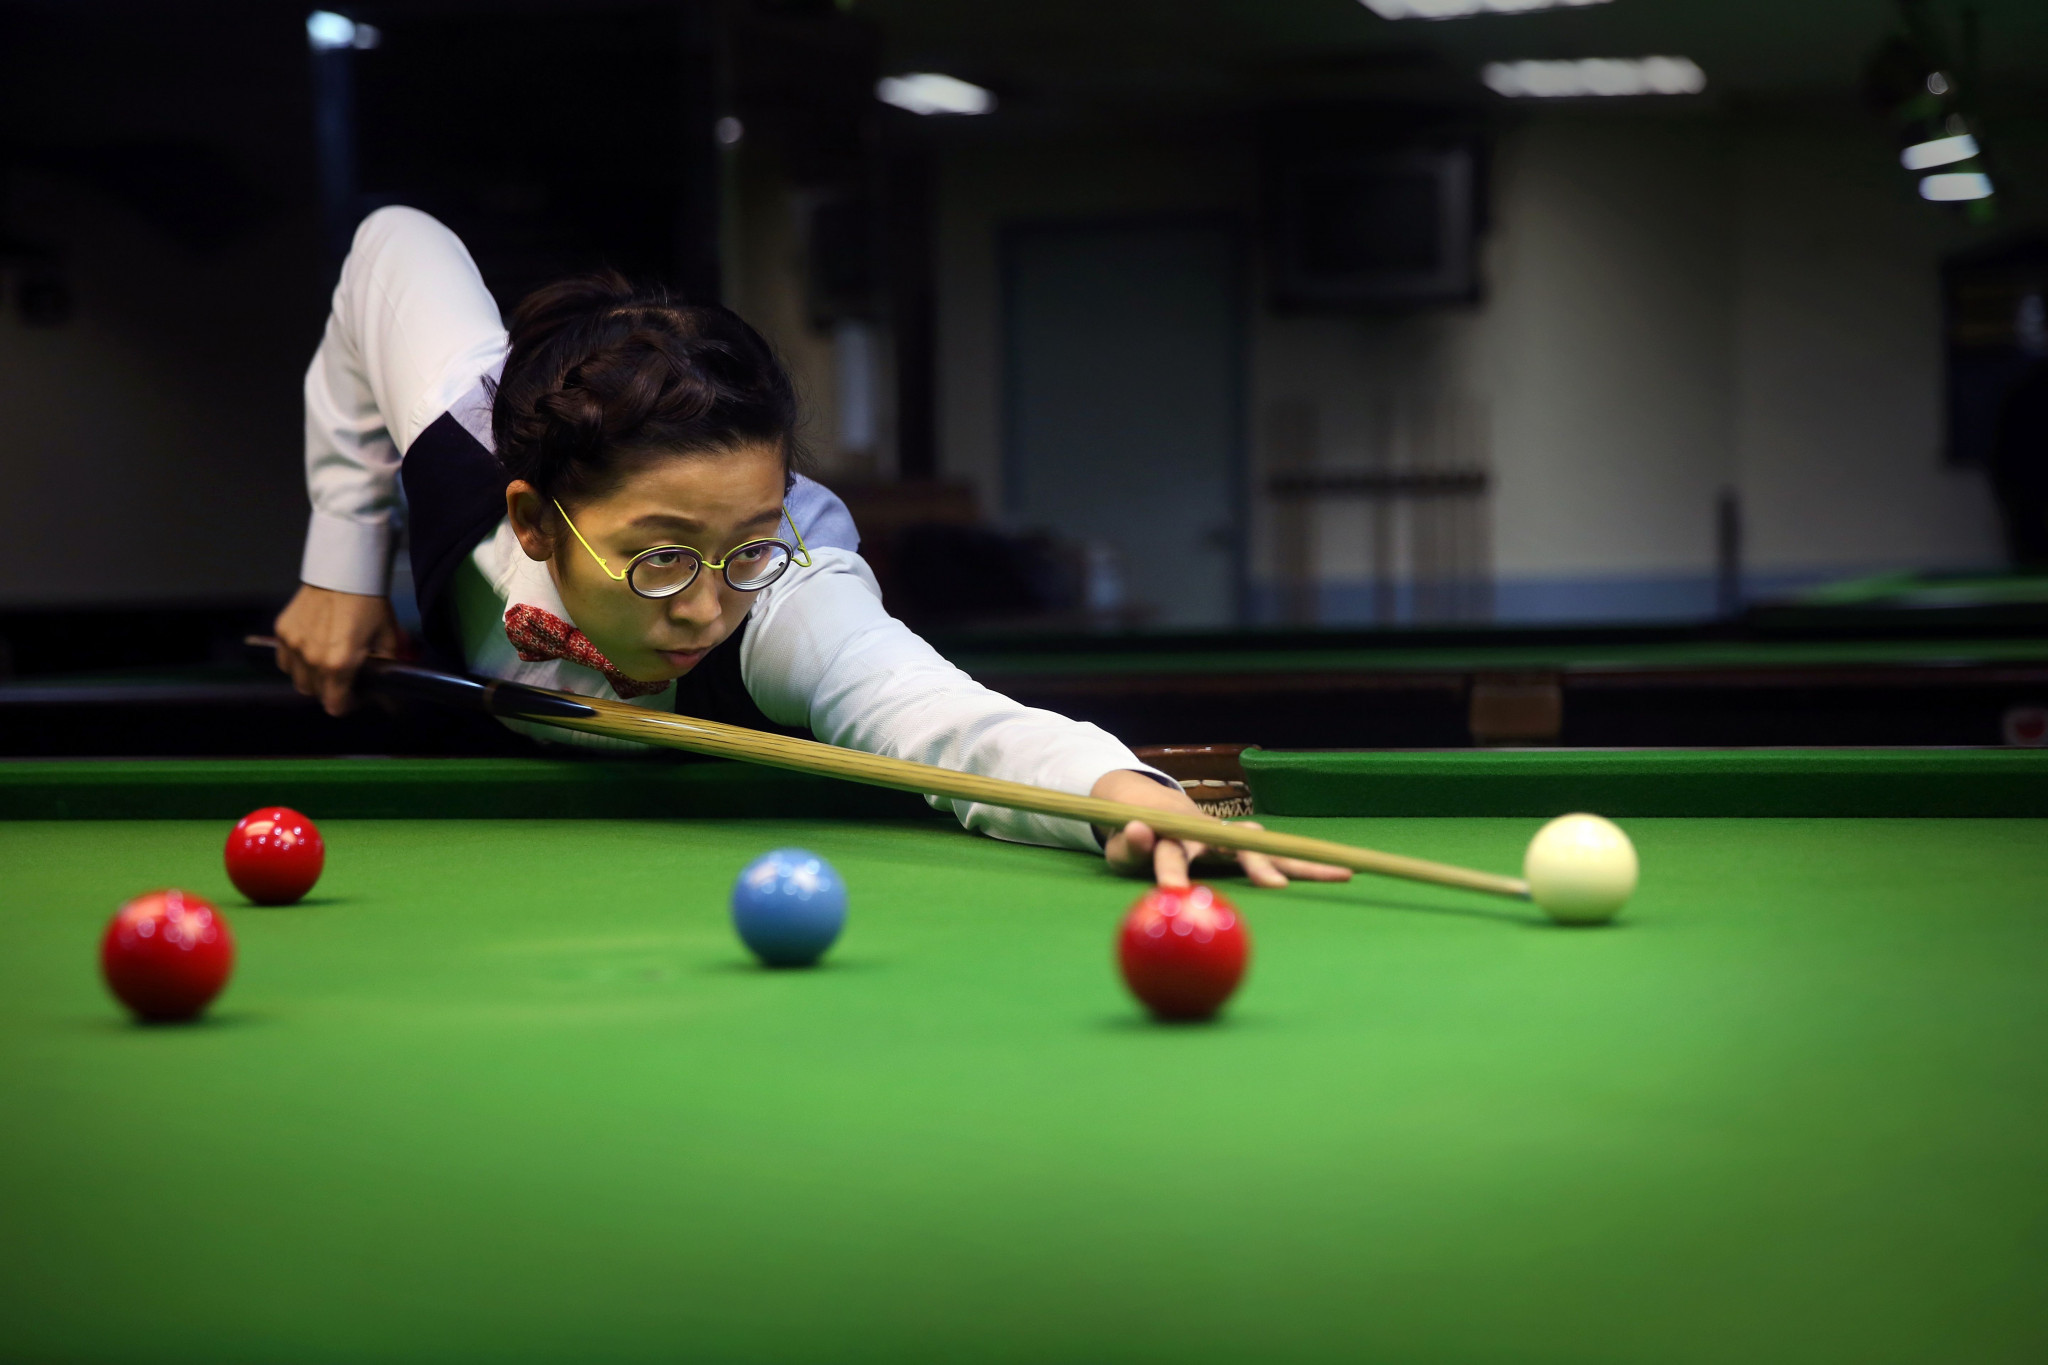 Ng On-yee is hoping to qualify for the main draw of the men's competition at the Crucible next month ©Getty Images